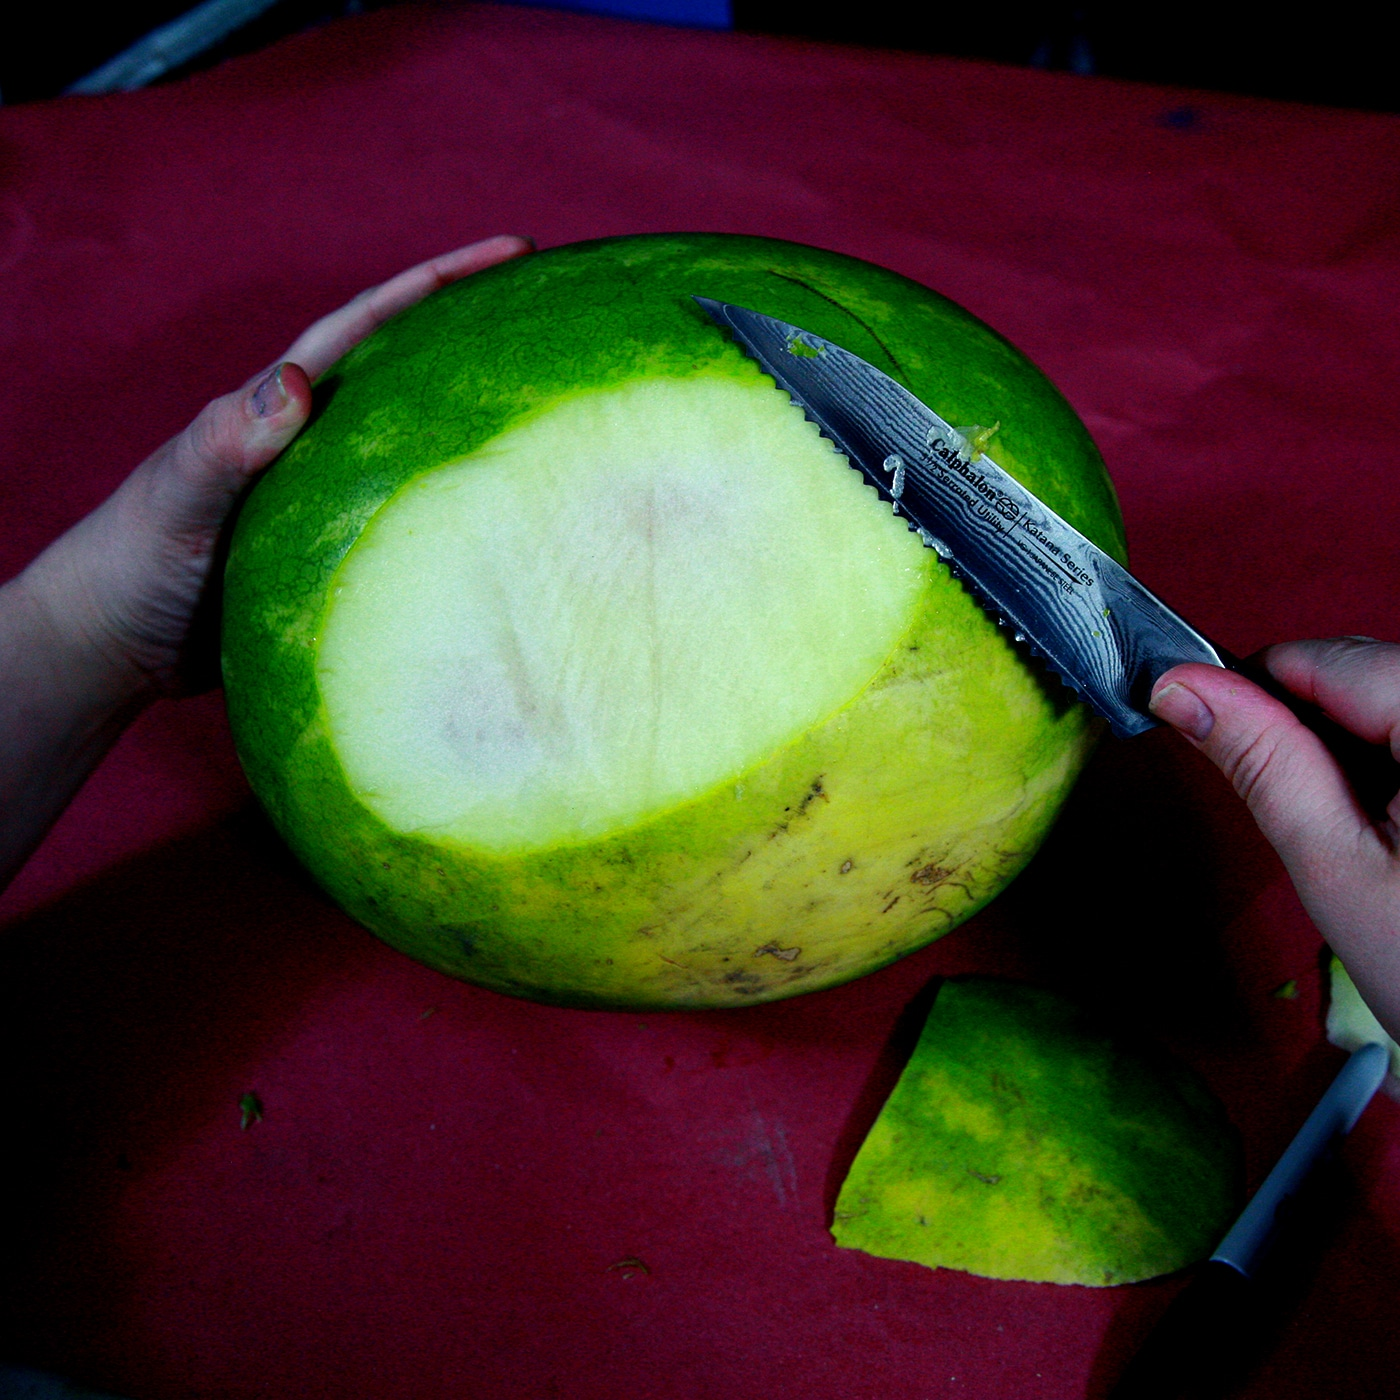 The bottom is being sliced off the watermelon, for stability.